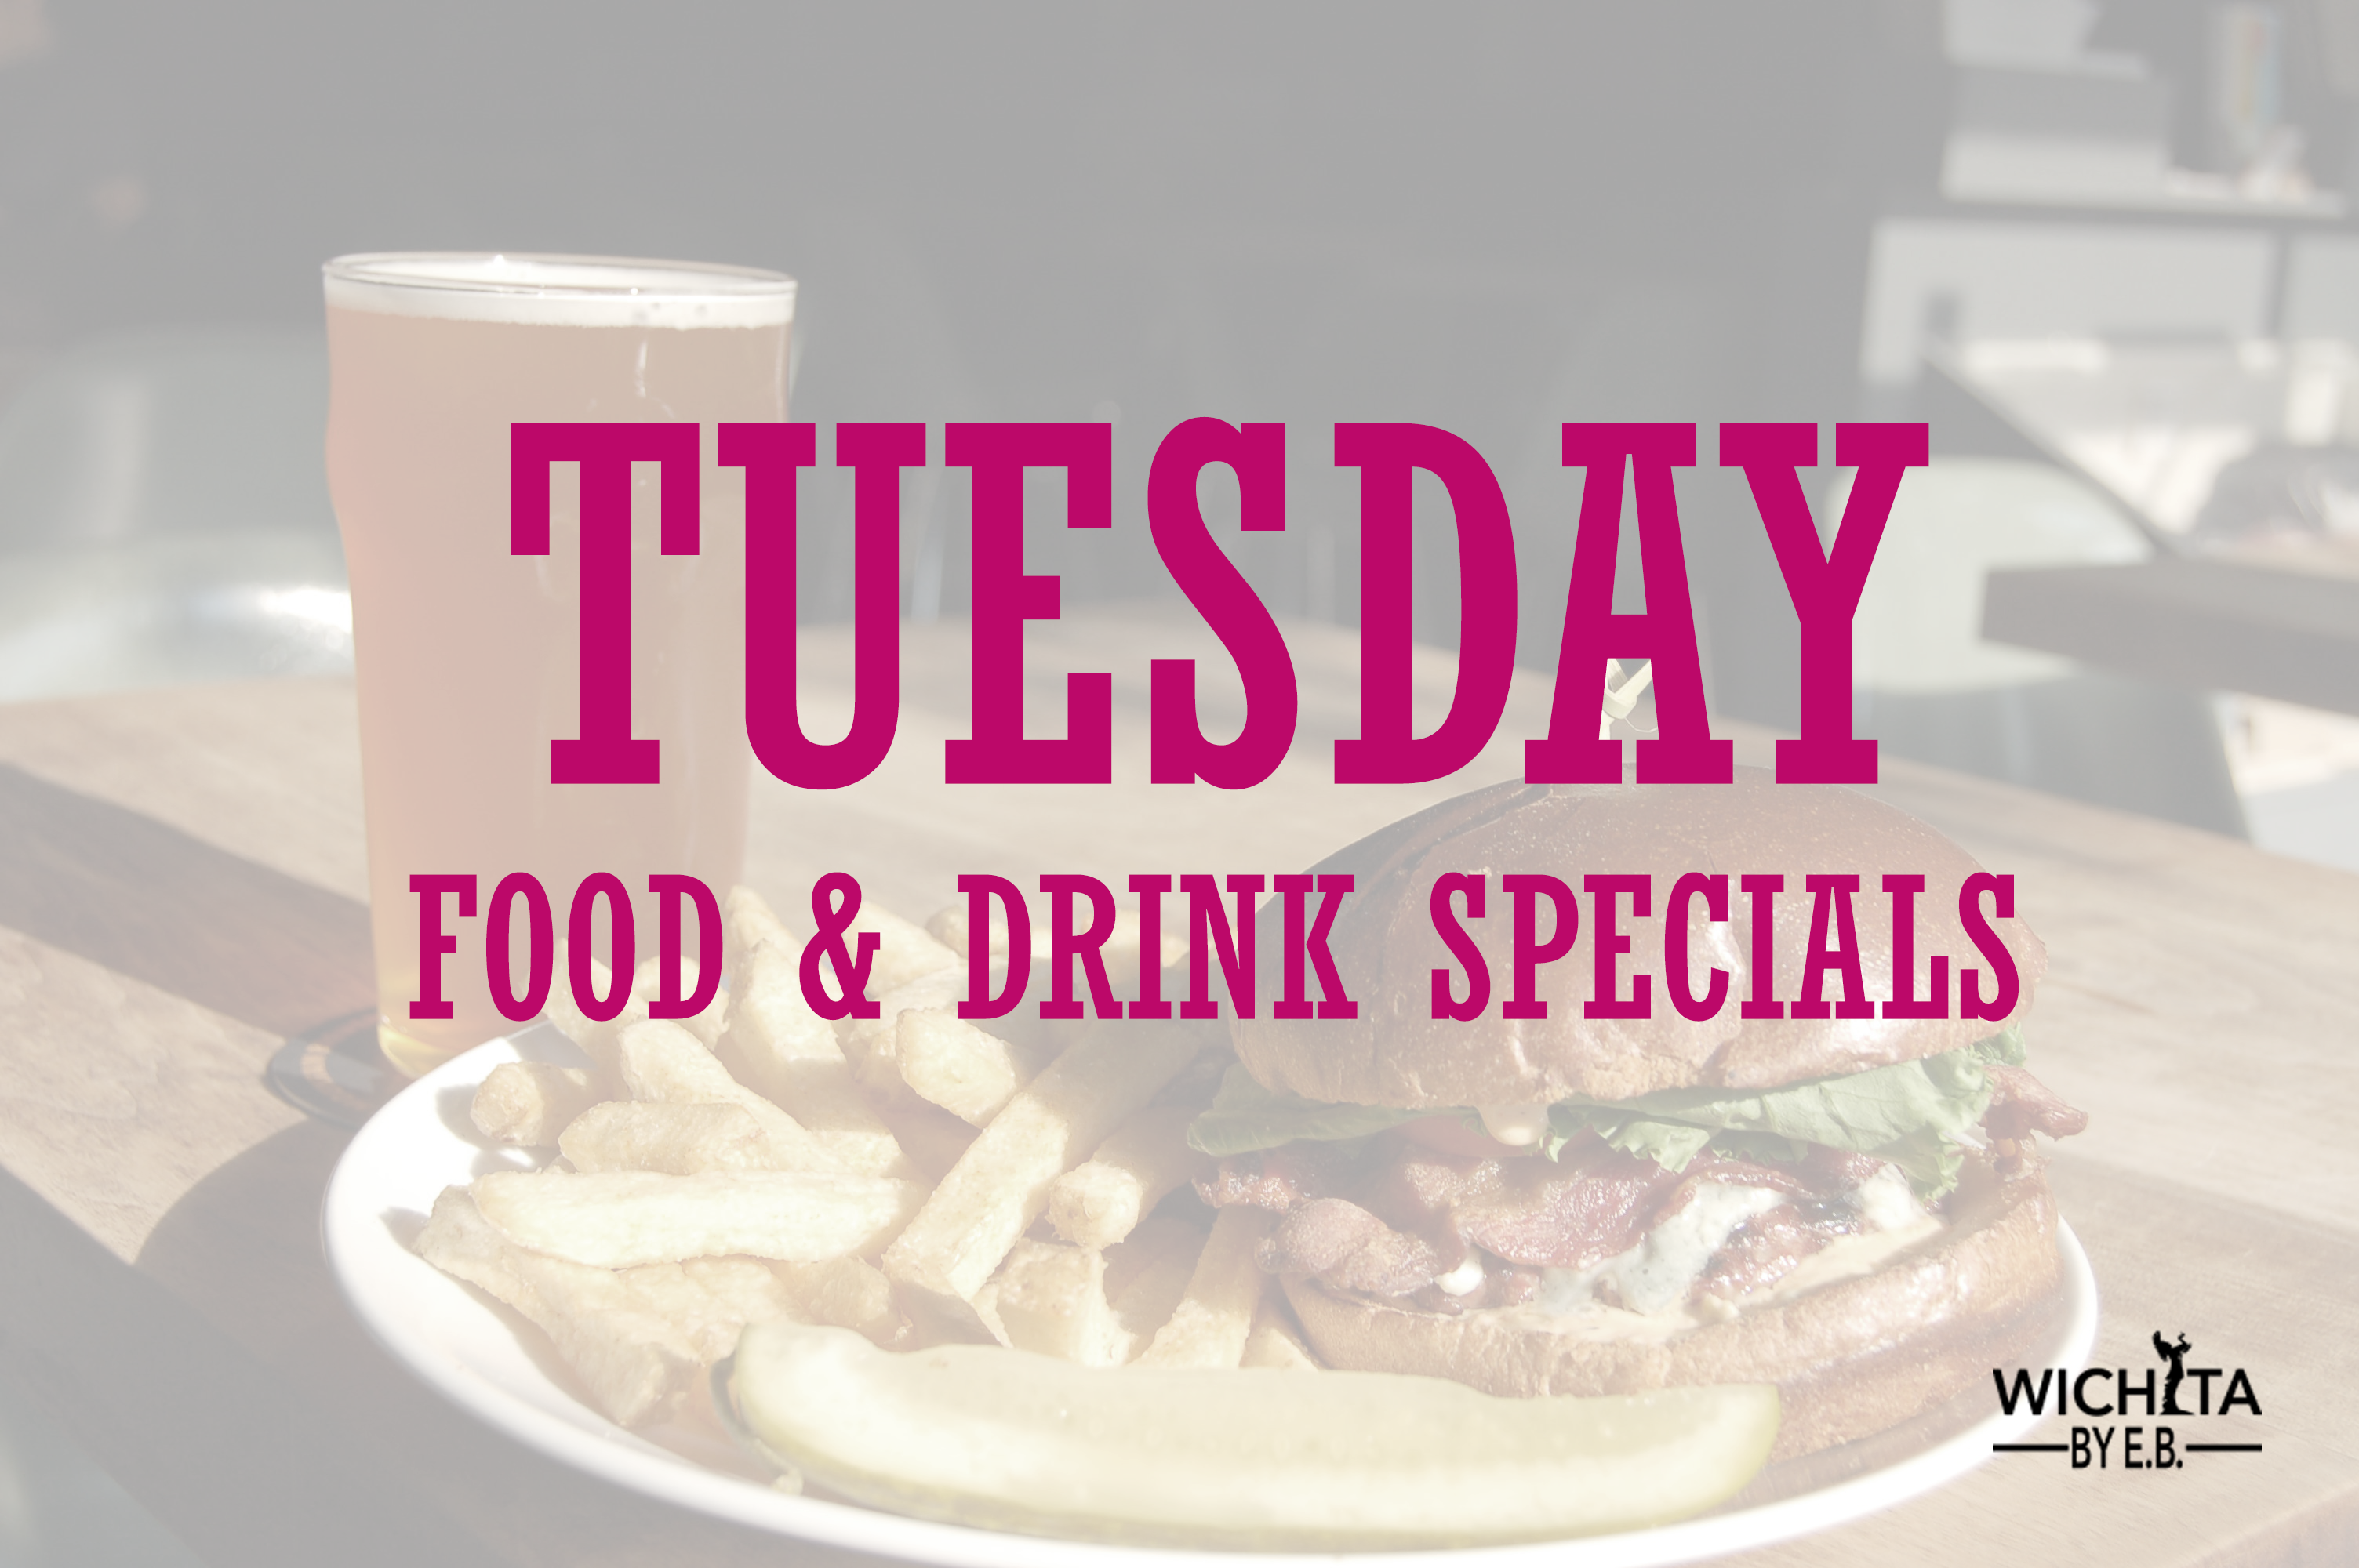 Tuesday Food And Drink Specials Wichita By E B